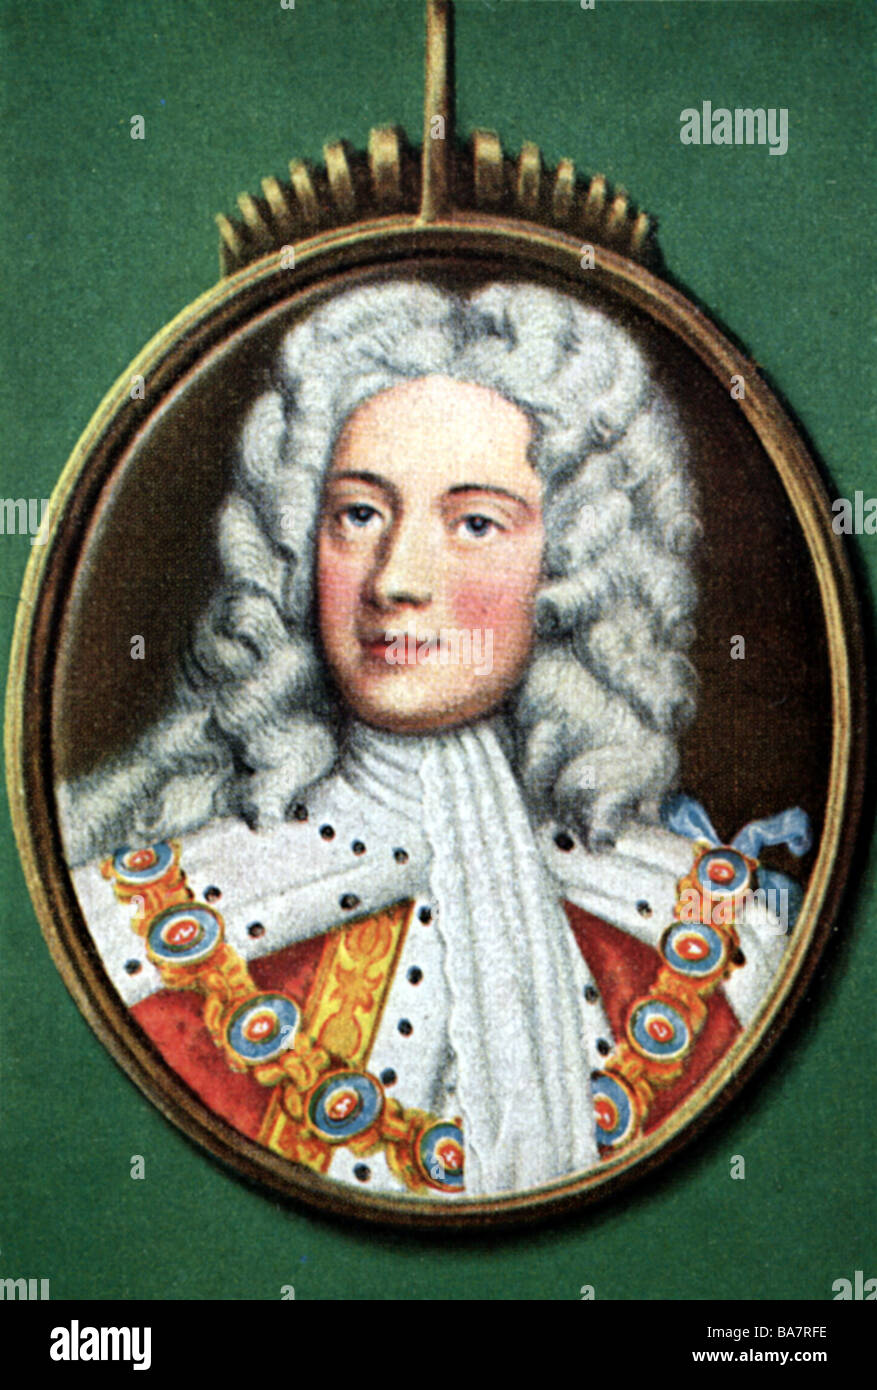 George II, 30.10.1683 - 25.10.1760, King von , Additional-Rights-Clearances-NA - Stock Image